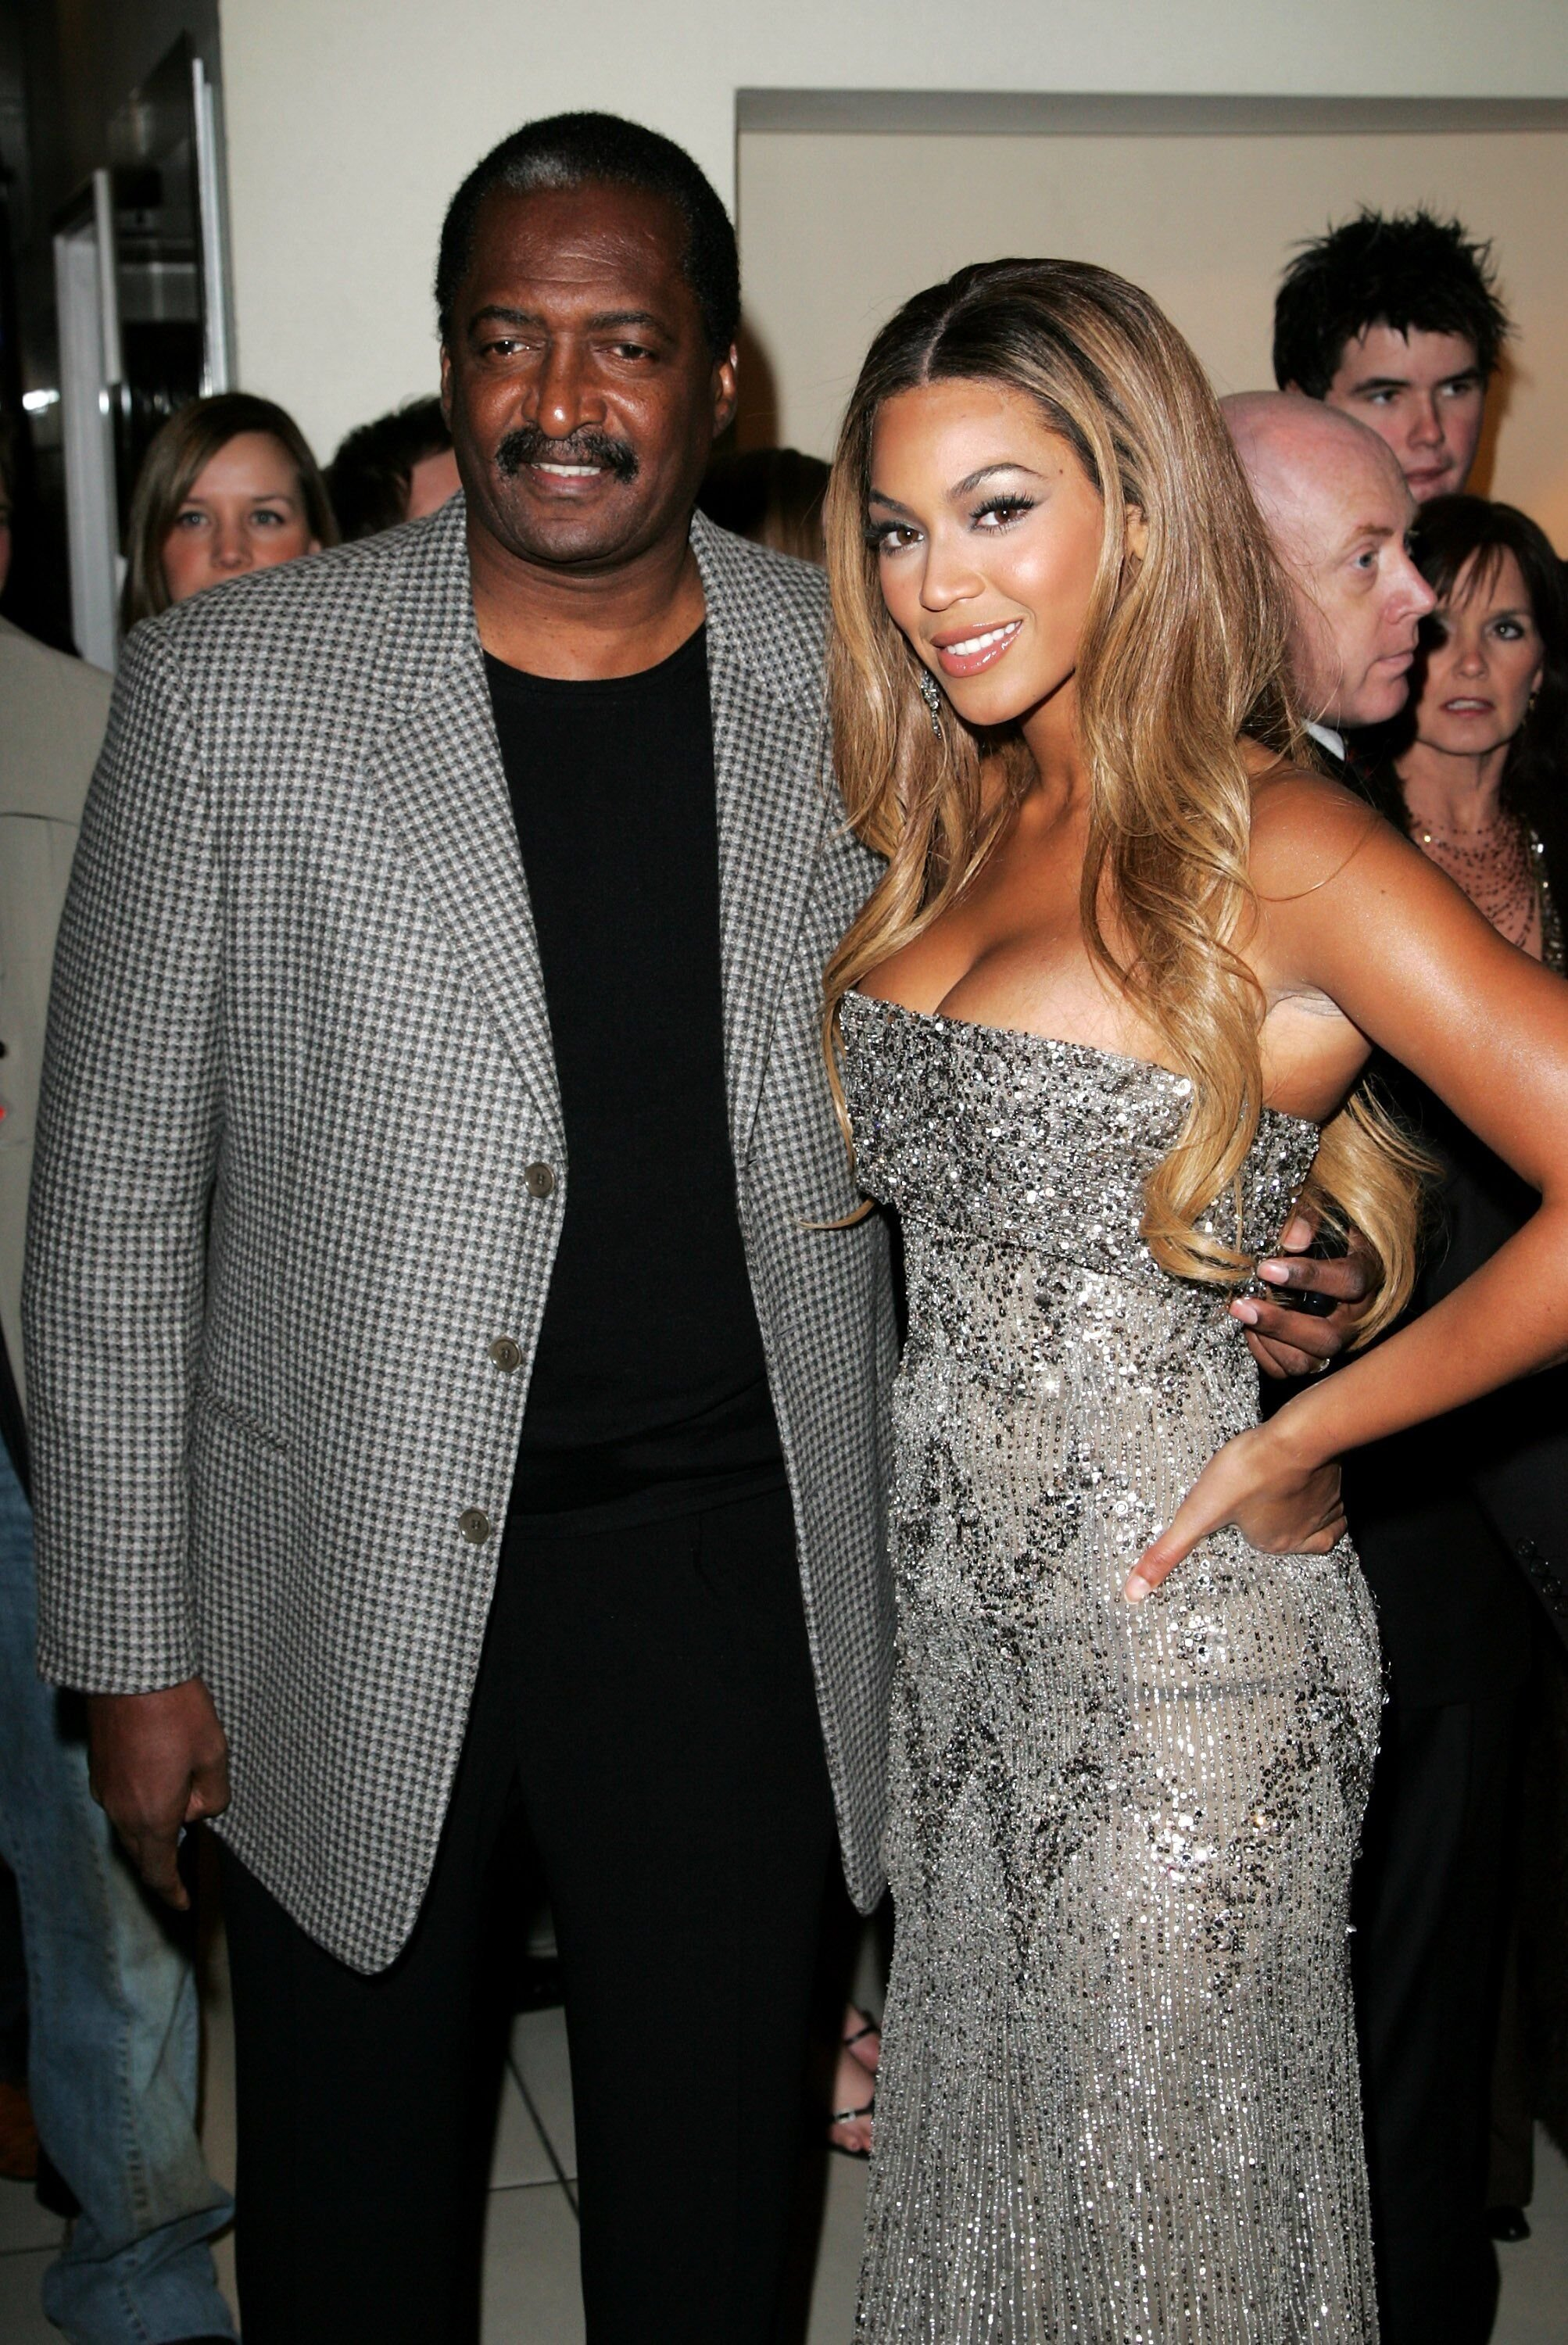 Mathew Knowles and Beyonce attend a formal event together | Source: Getty Images/GlobalImagesUkraine